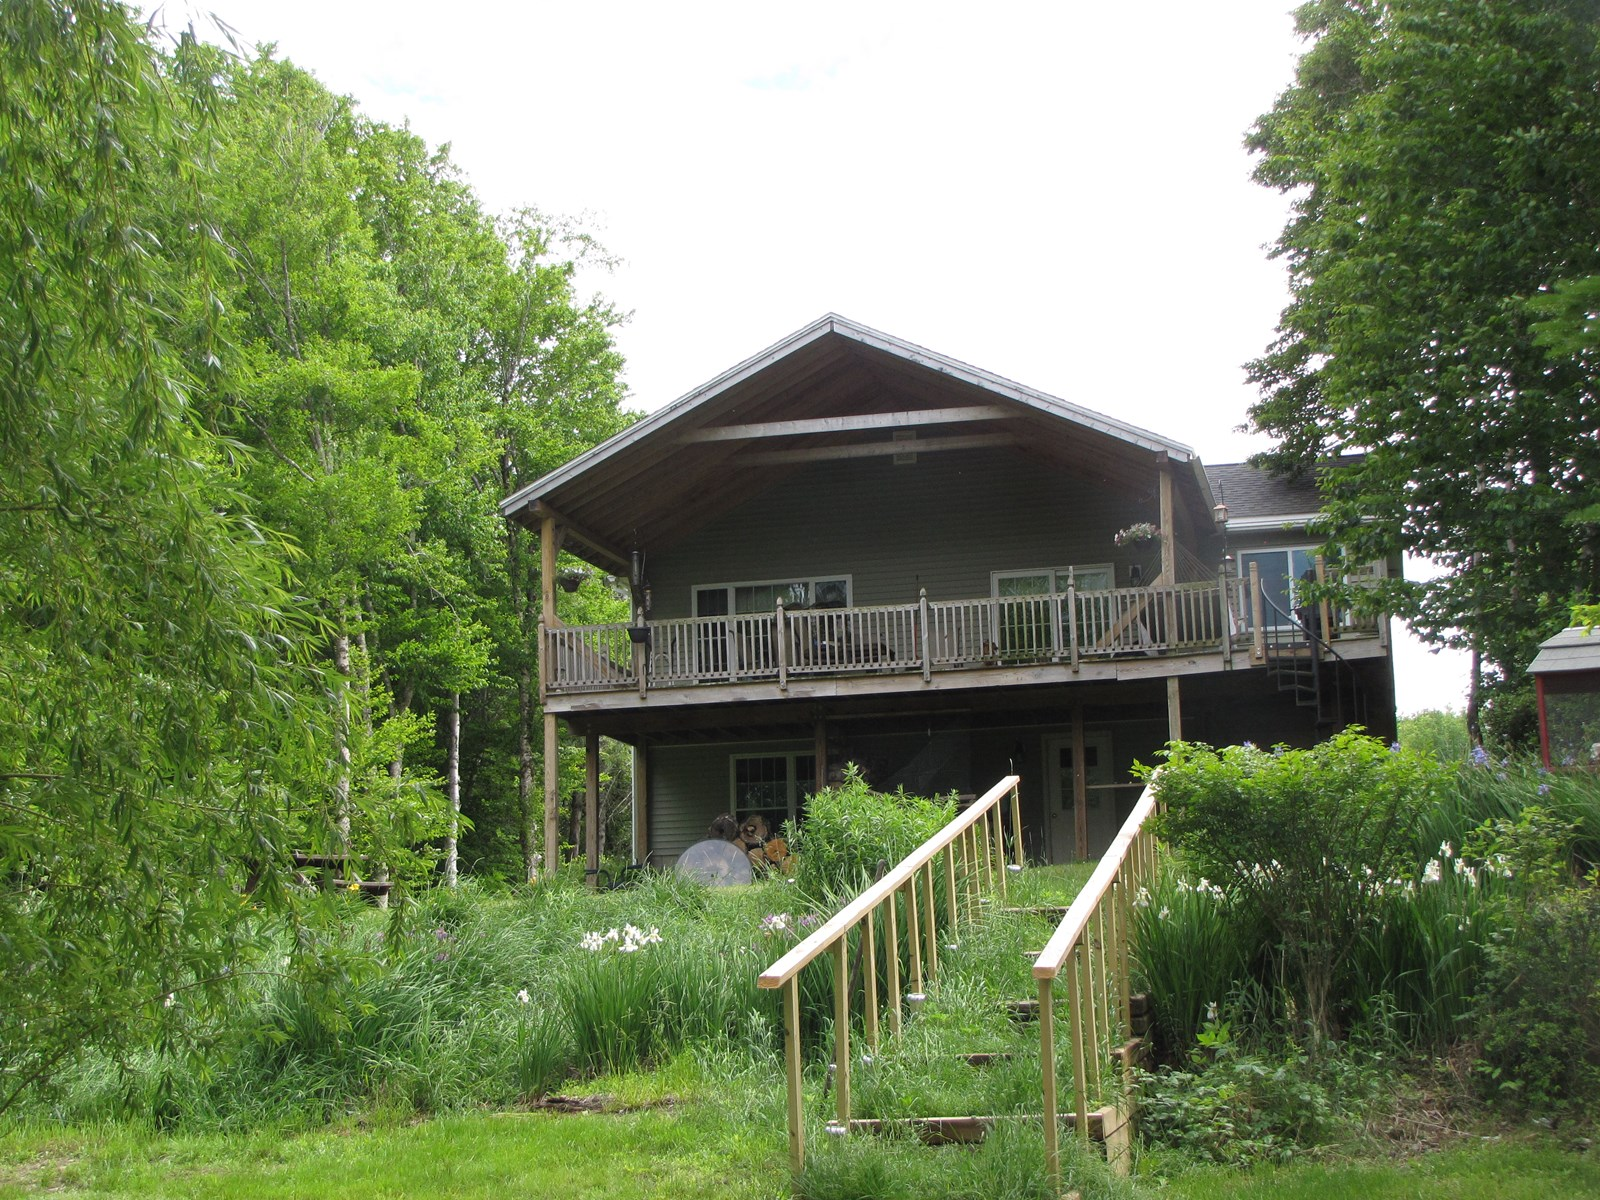 Home for Sale in East Machias, Maine, on Hadley Lake